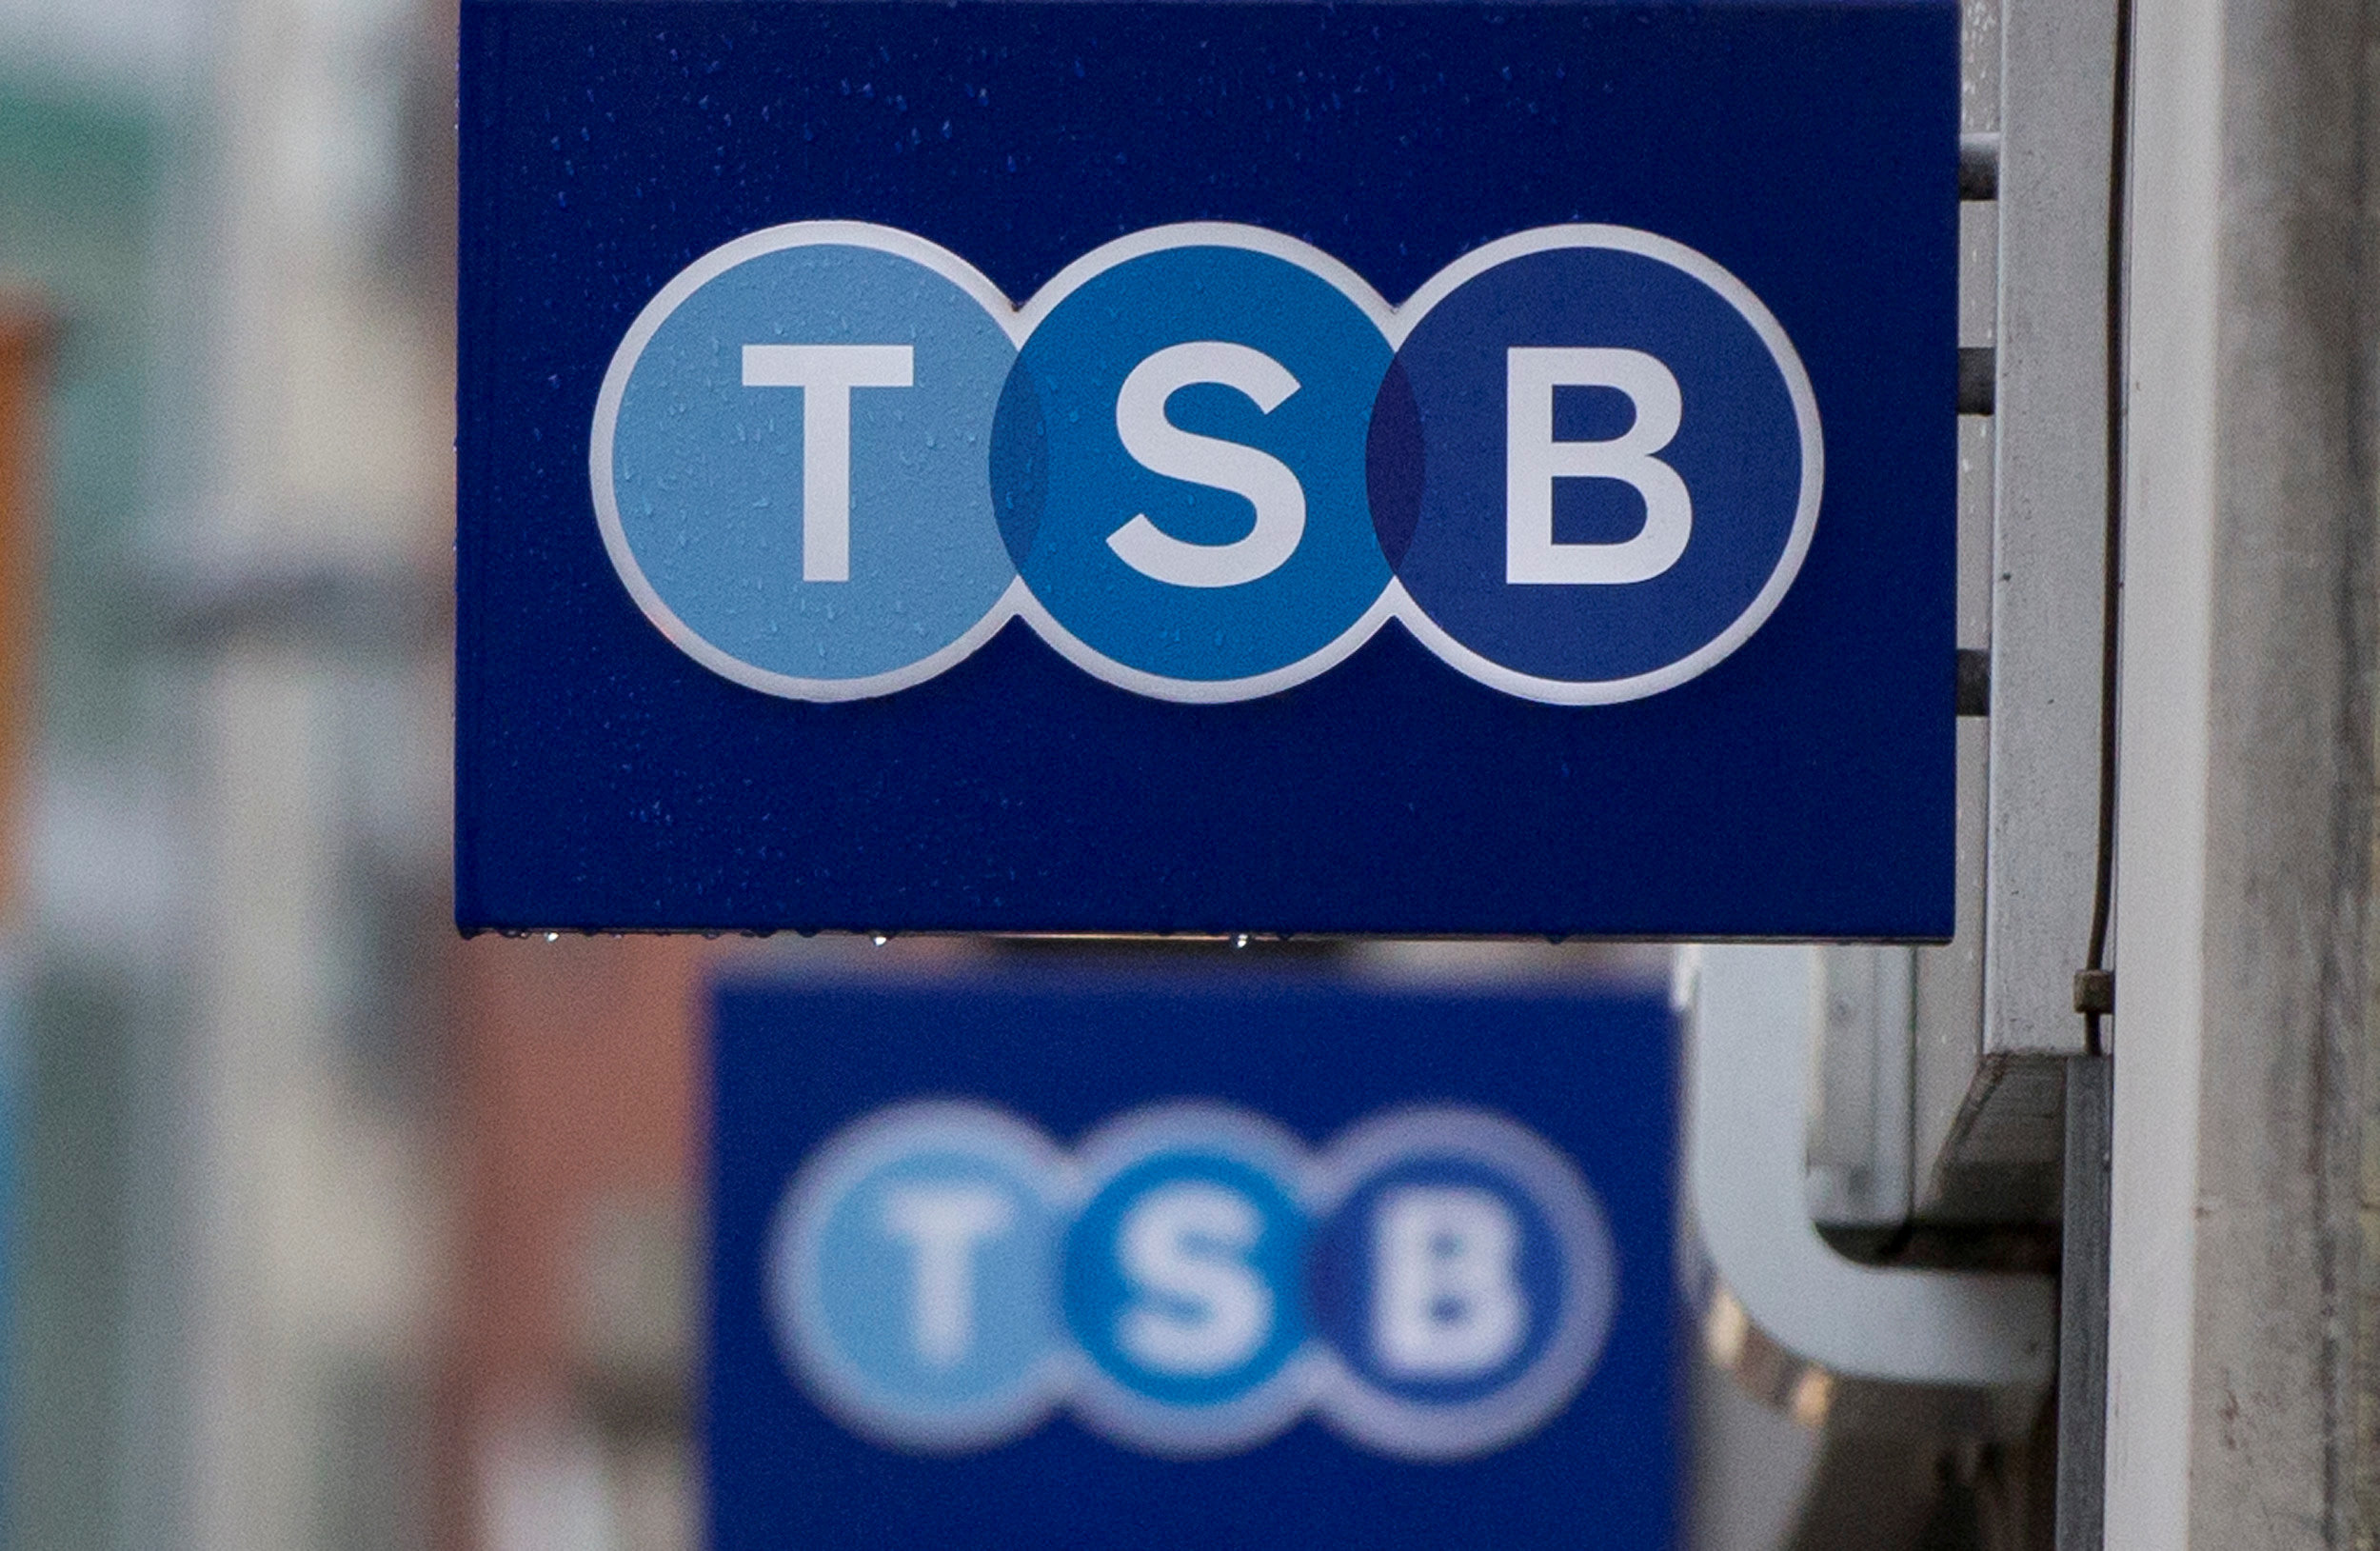 Tsb Launches New Bank Account That Automatically Tops Itself Up With Savings To Stop You Going Into The Red